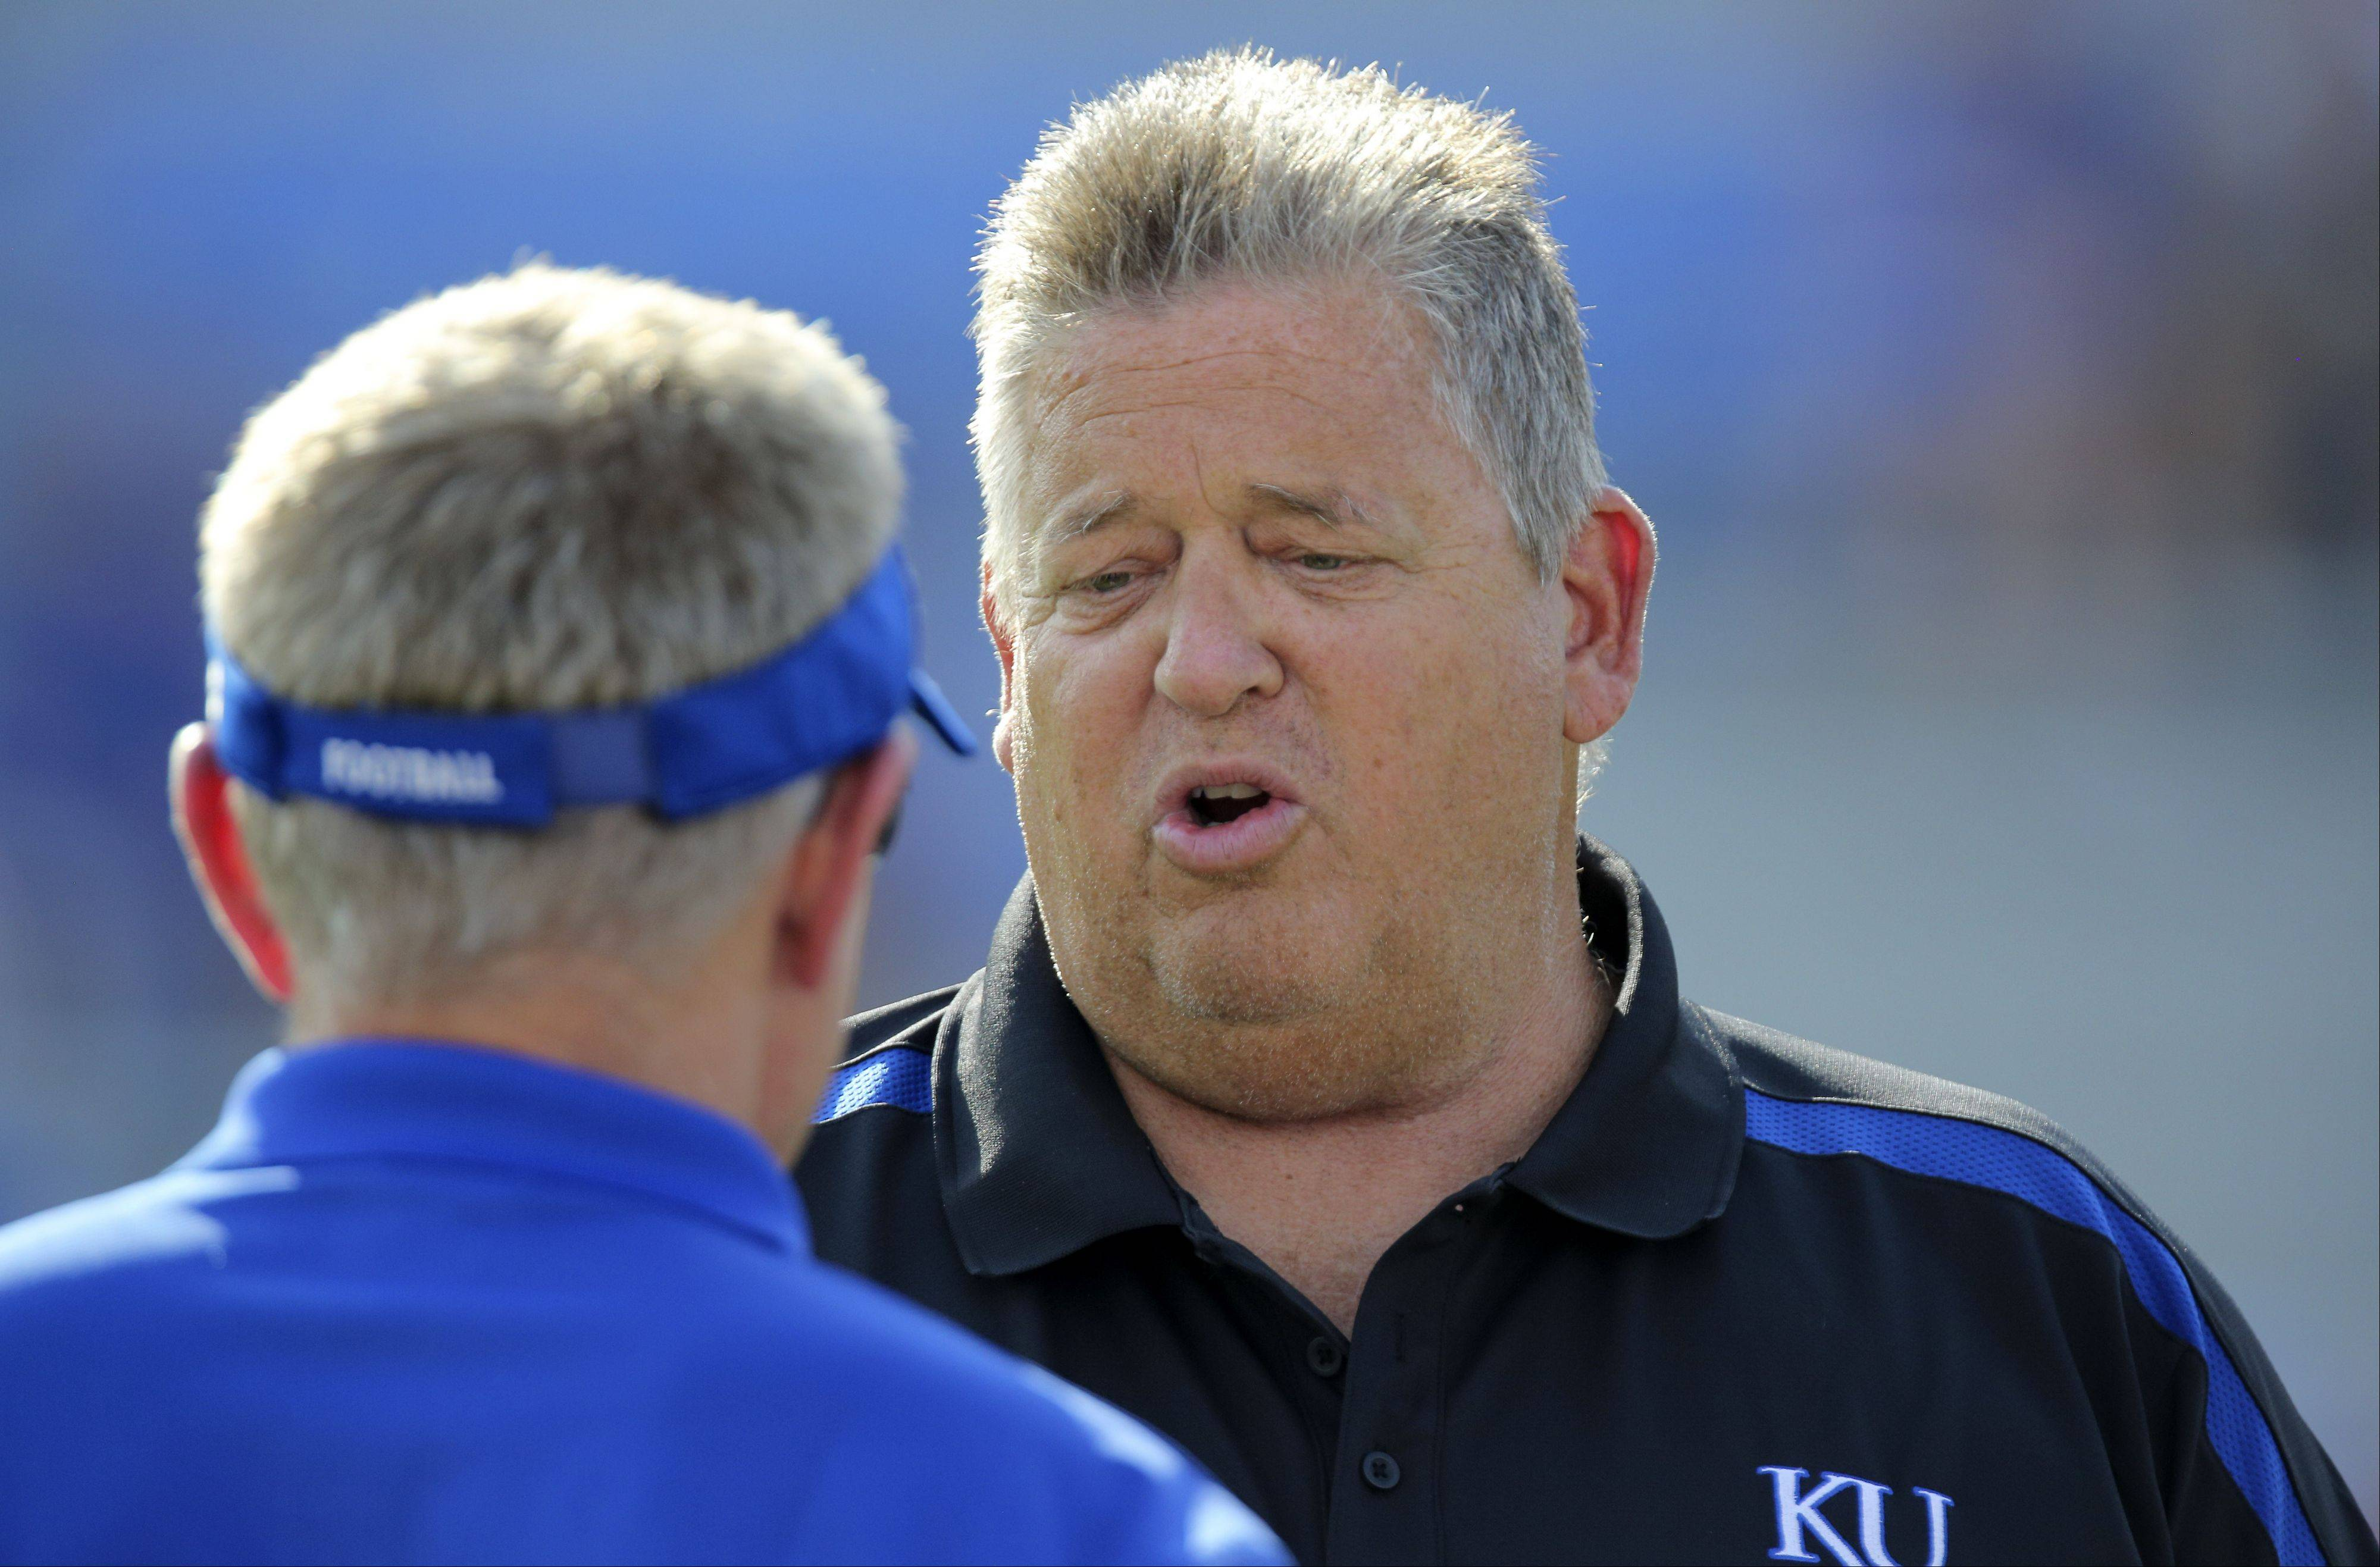 Kansas head coach Charlie Weis, right, will try to end KU's 13-game road losing streak when the Jayhawks take on Northern Illinois in DeKalb. NIU, however, has a 16-game win streak at Huskie Stadium.